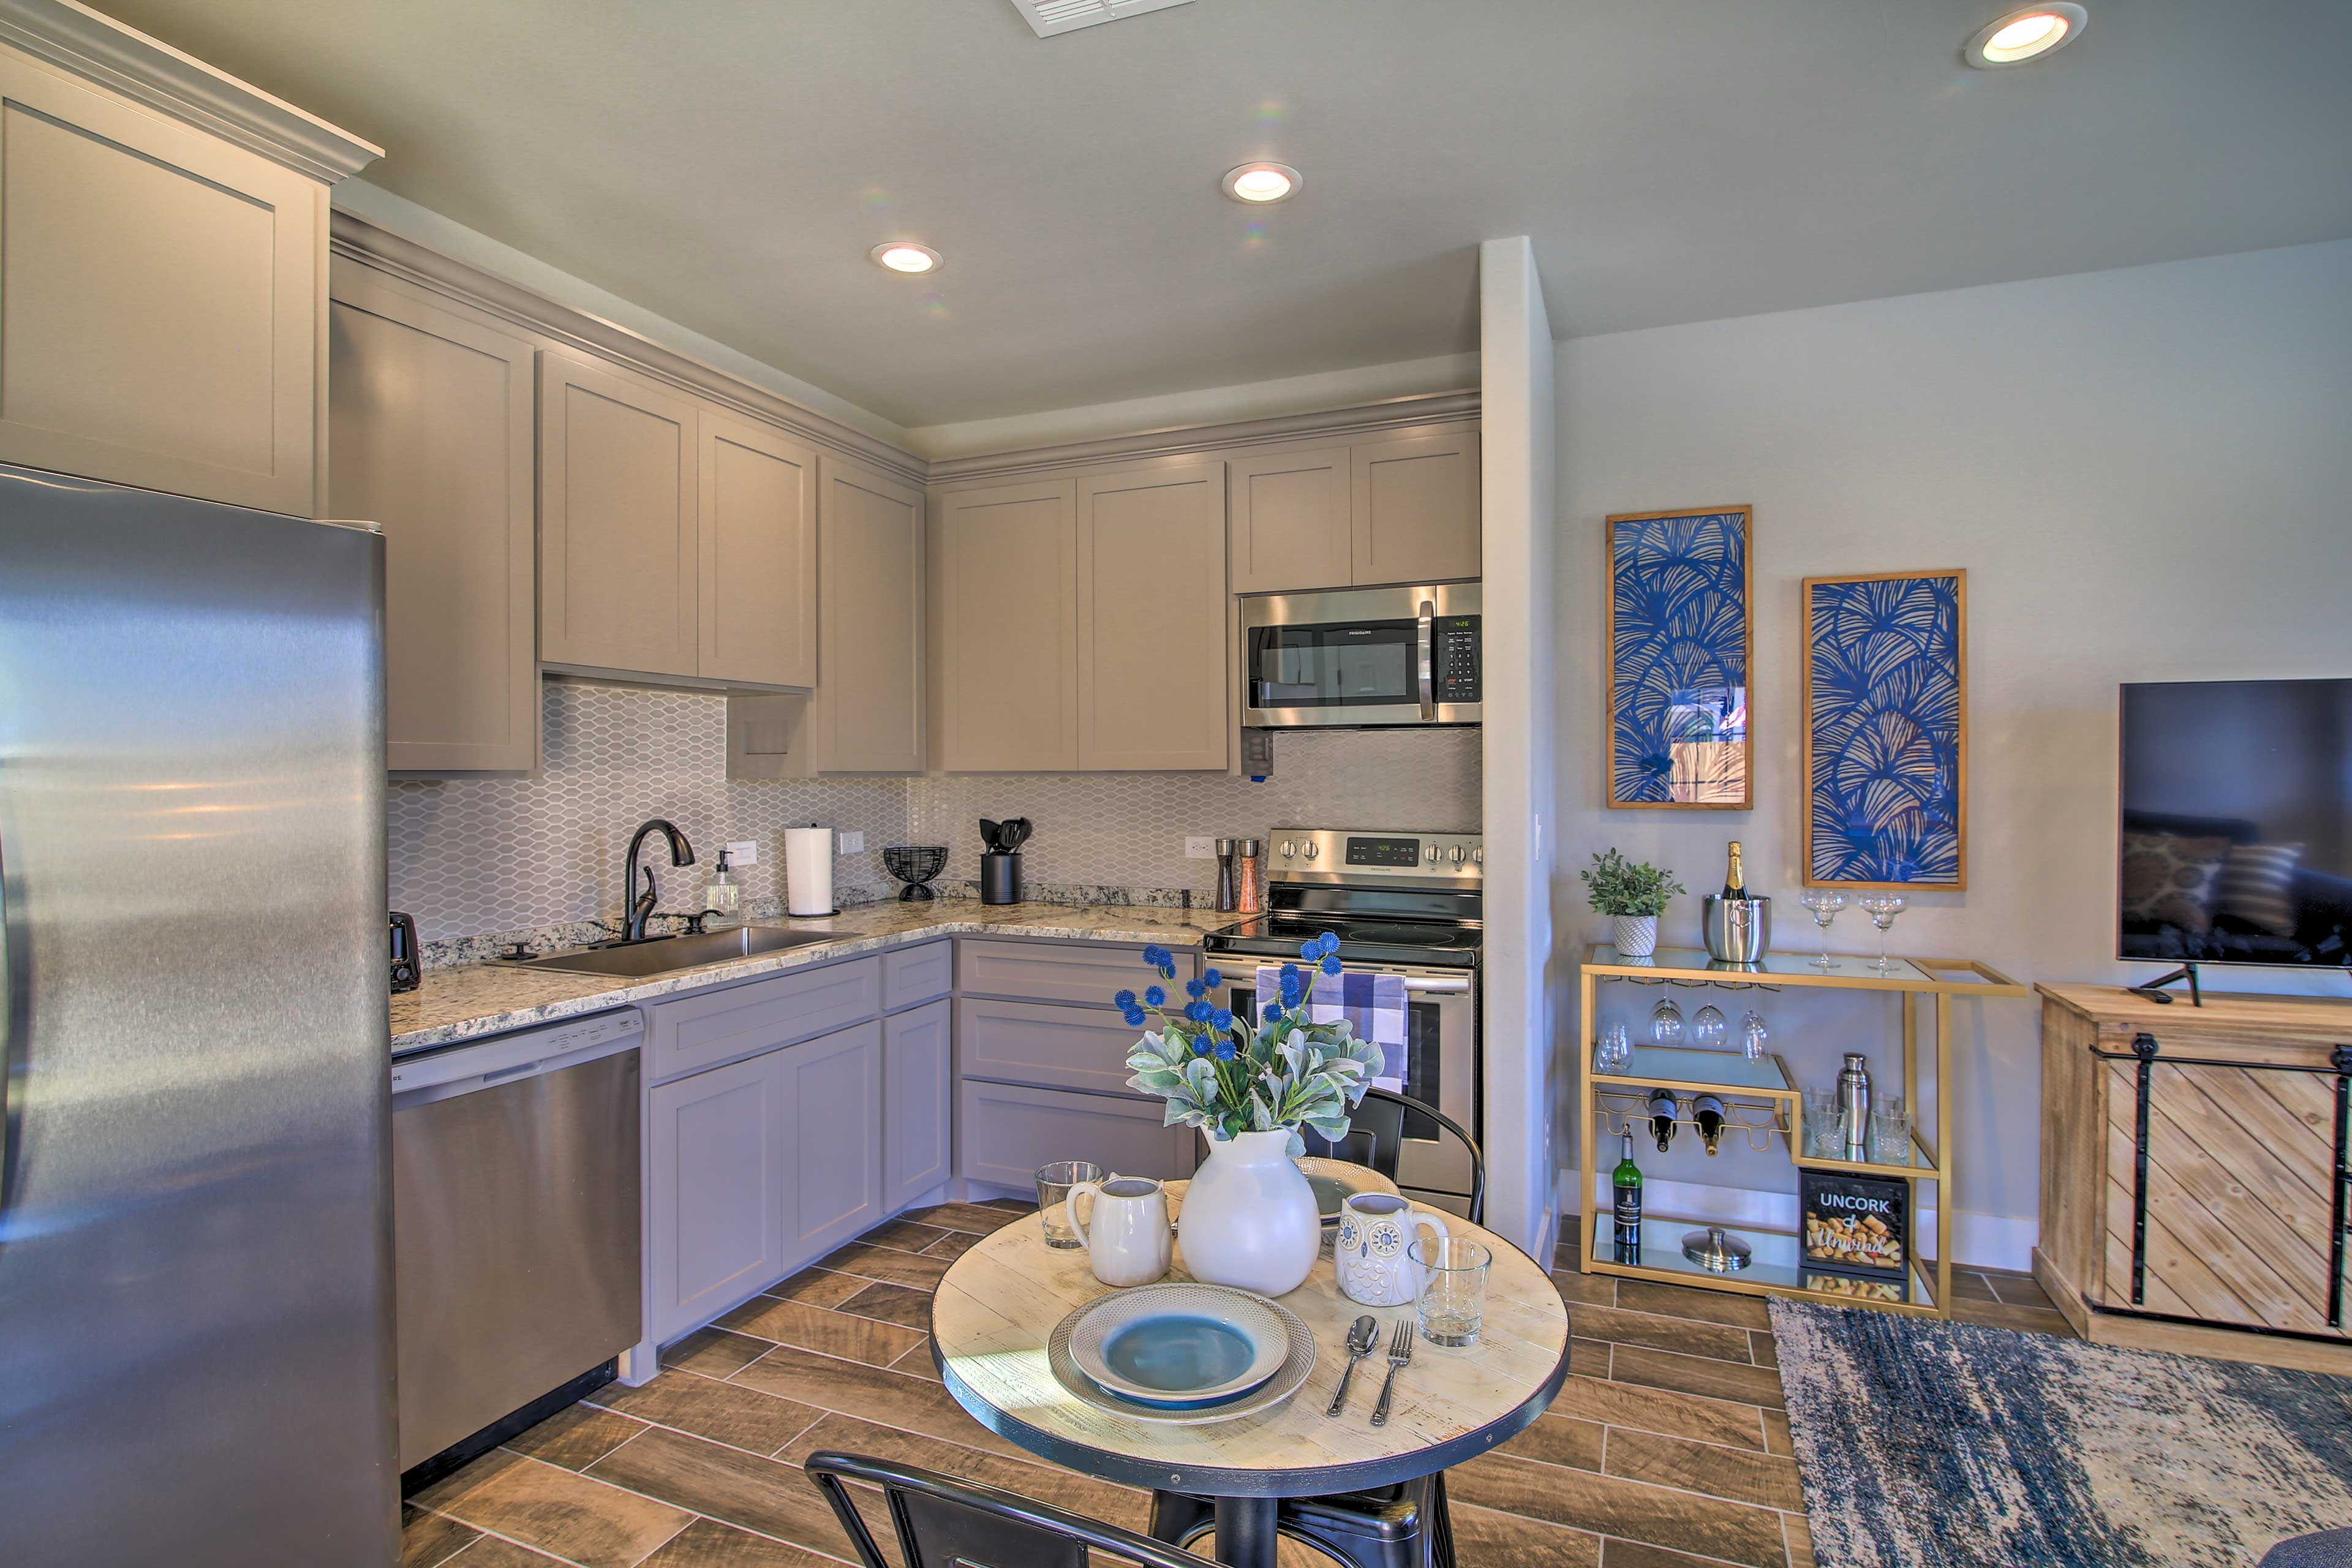 Fully Equipped Kitchen | Toaster | Trash Bags/Paper Towels Provided